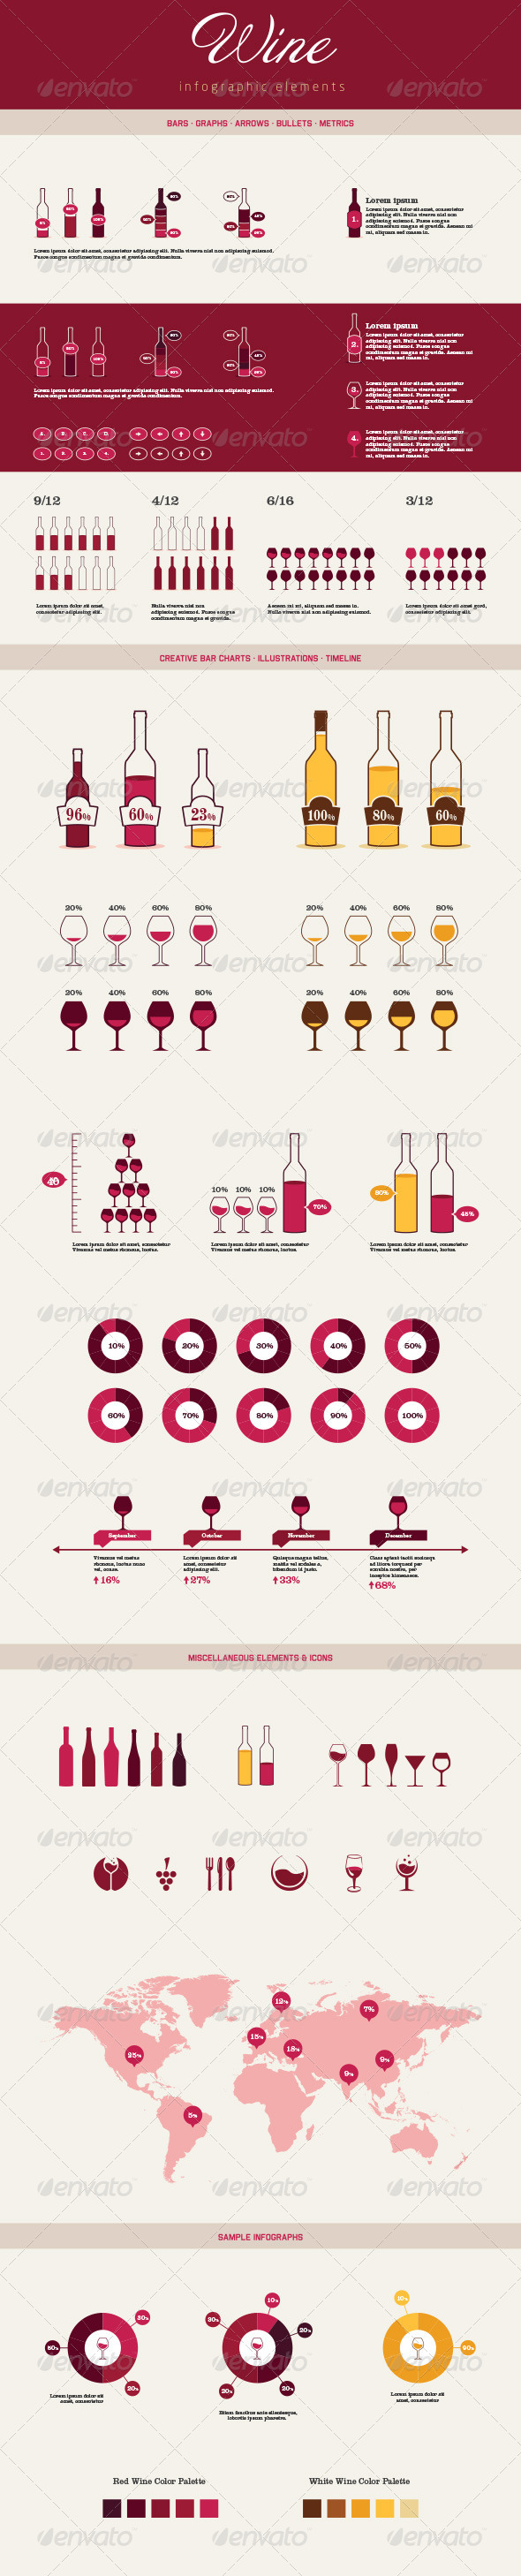 Infographic Elements - Wine - Infographics